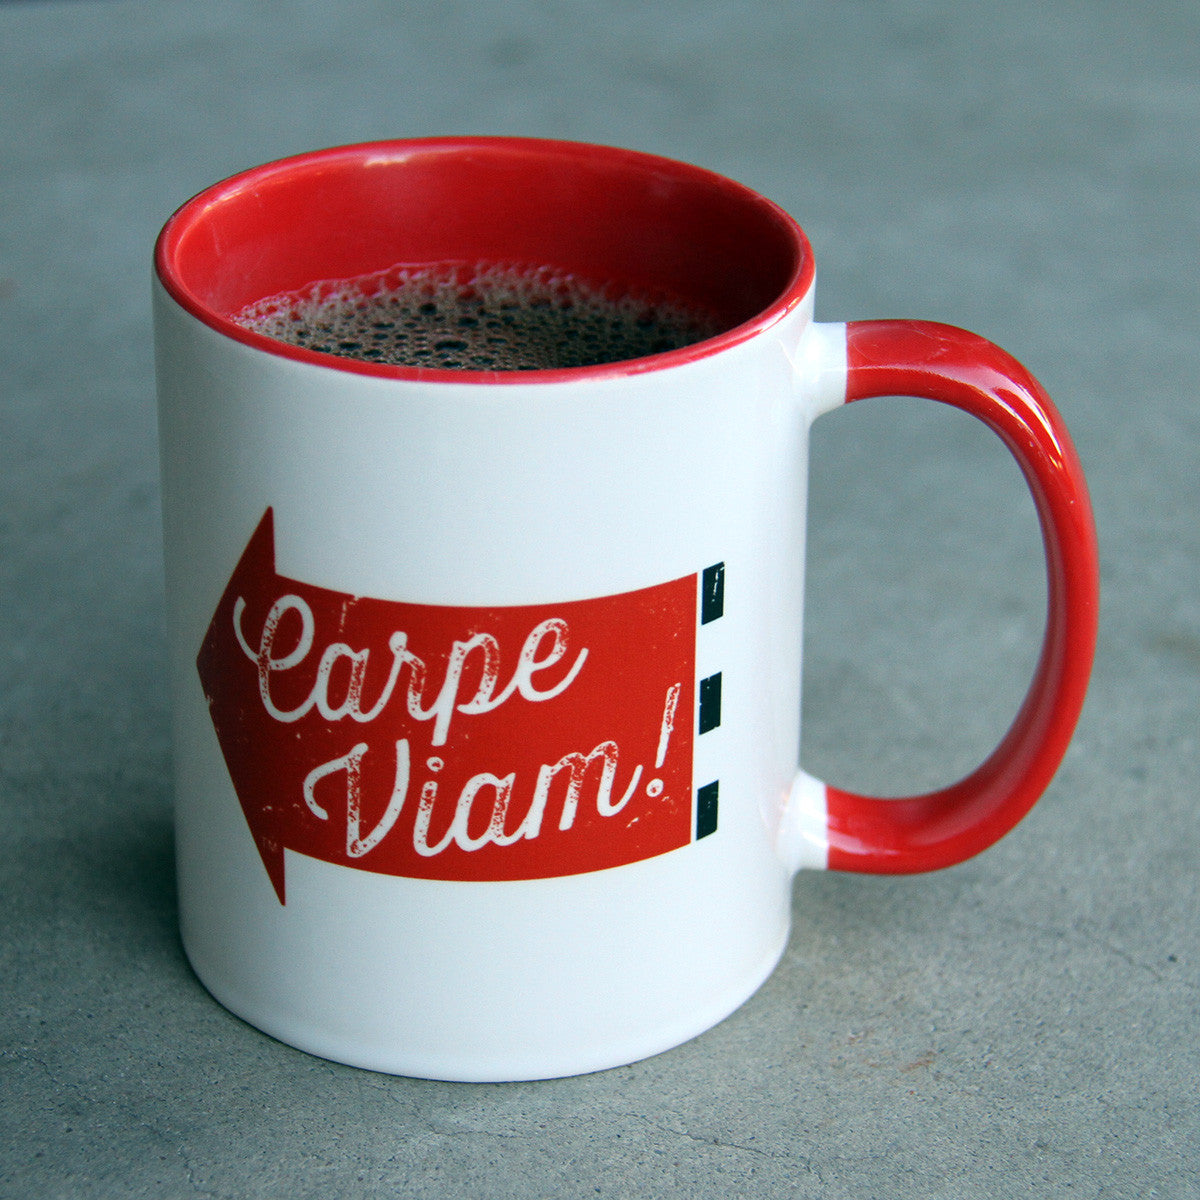 The Carpe Viam™ Mug